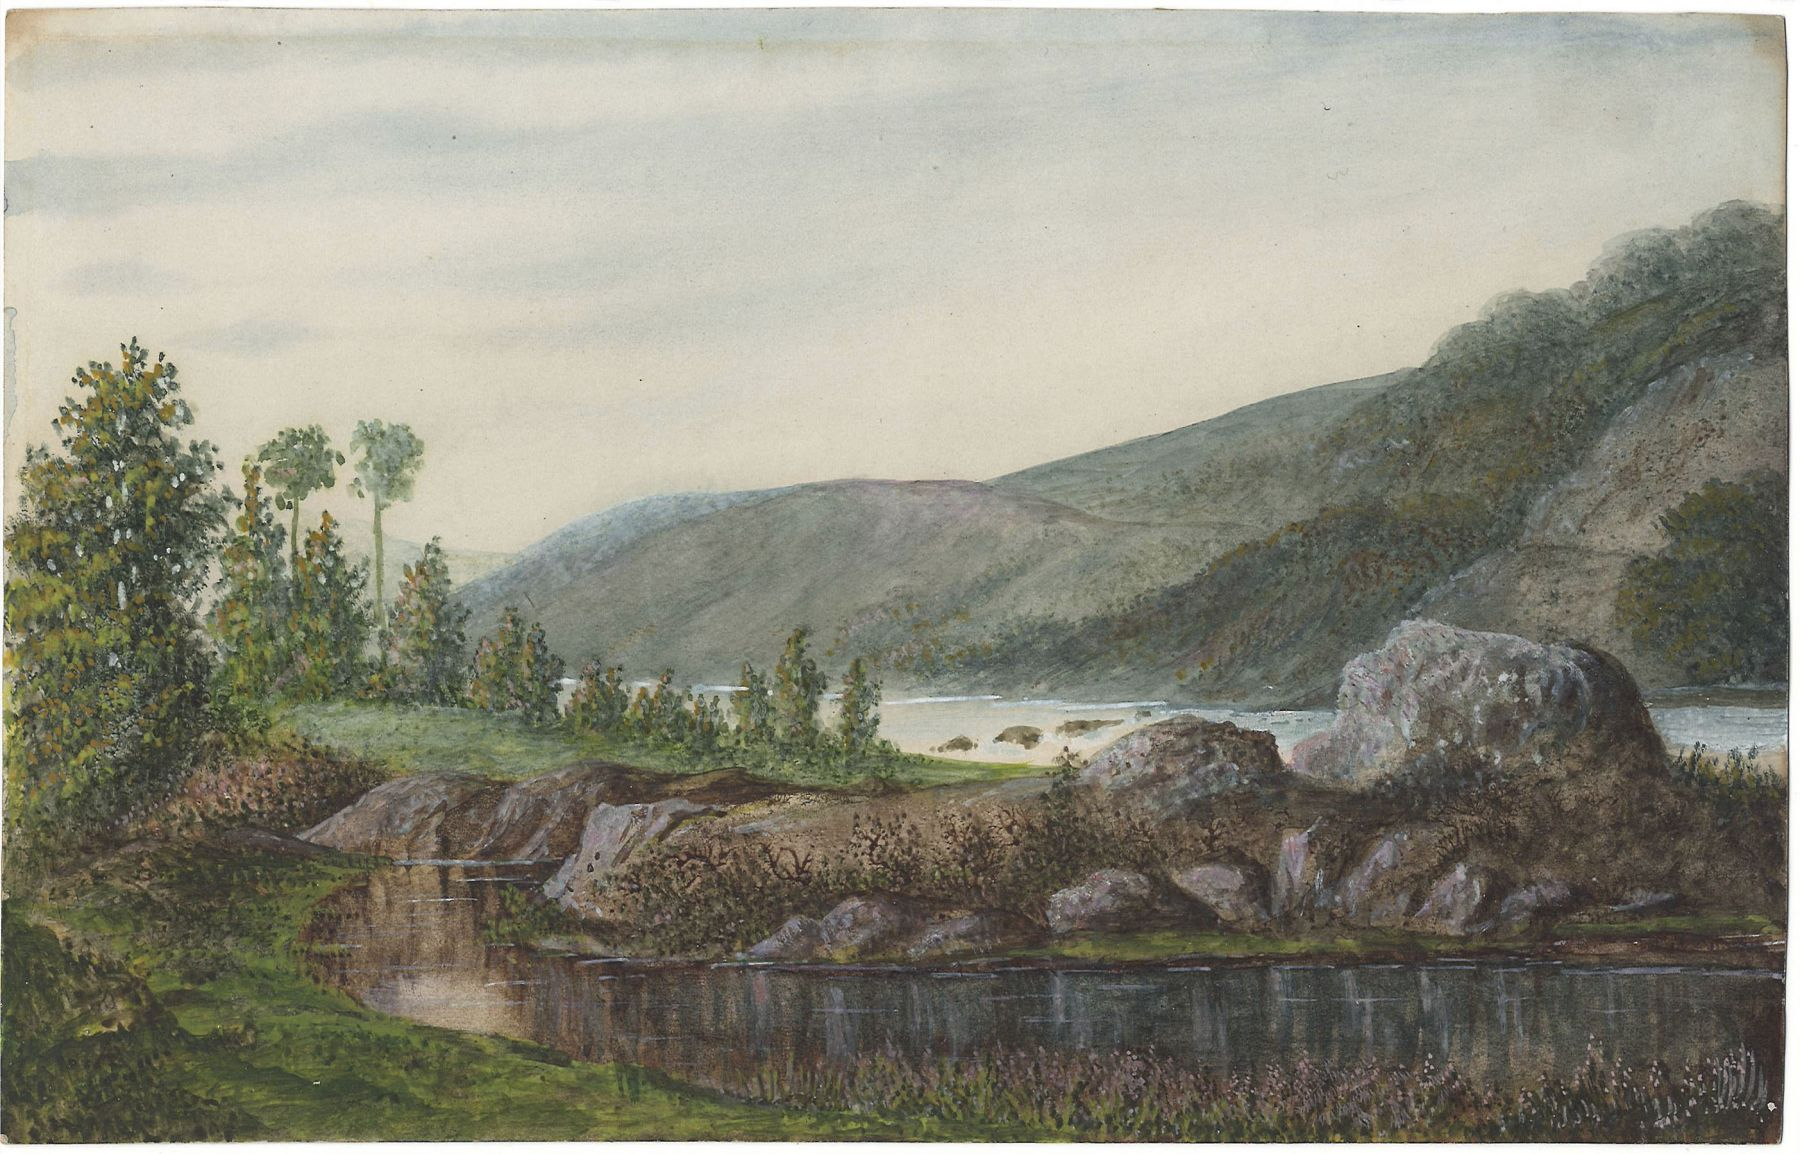 George Sand  Landscape with River and Mountains, 1875  Watercolor and gouache on paper 6 1/8 x 9 5/8 inches